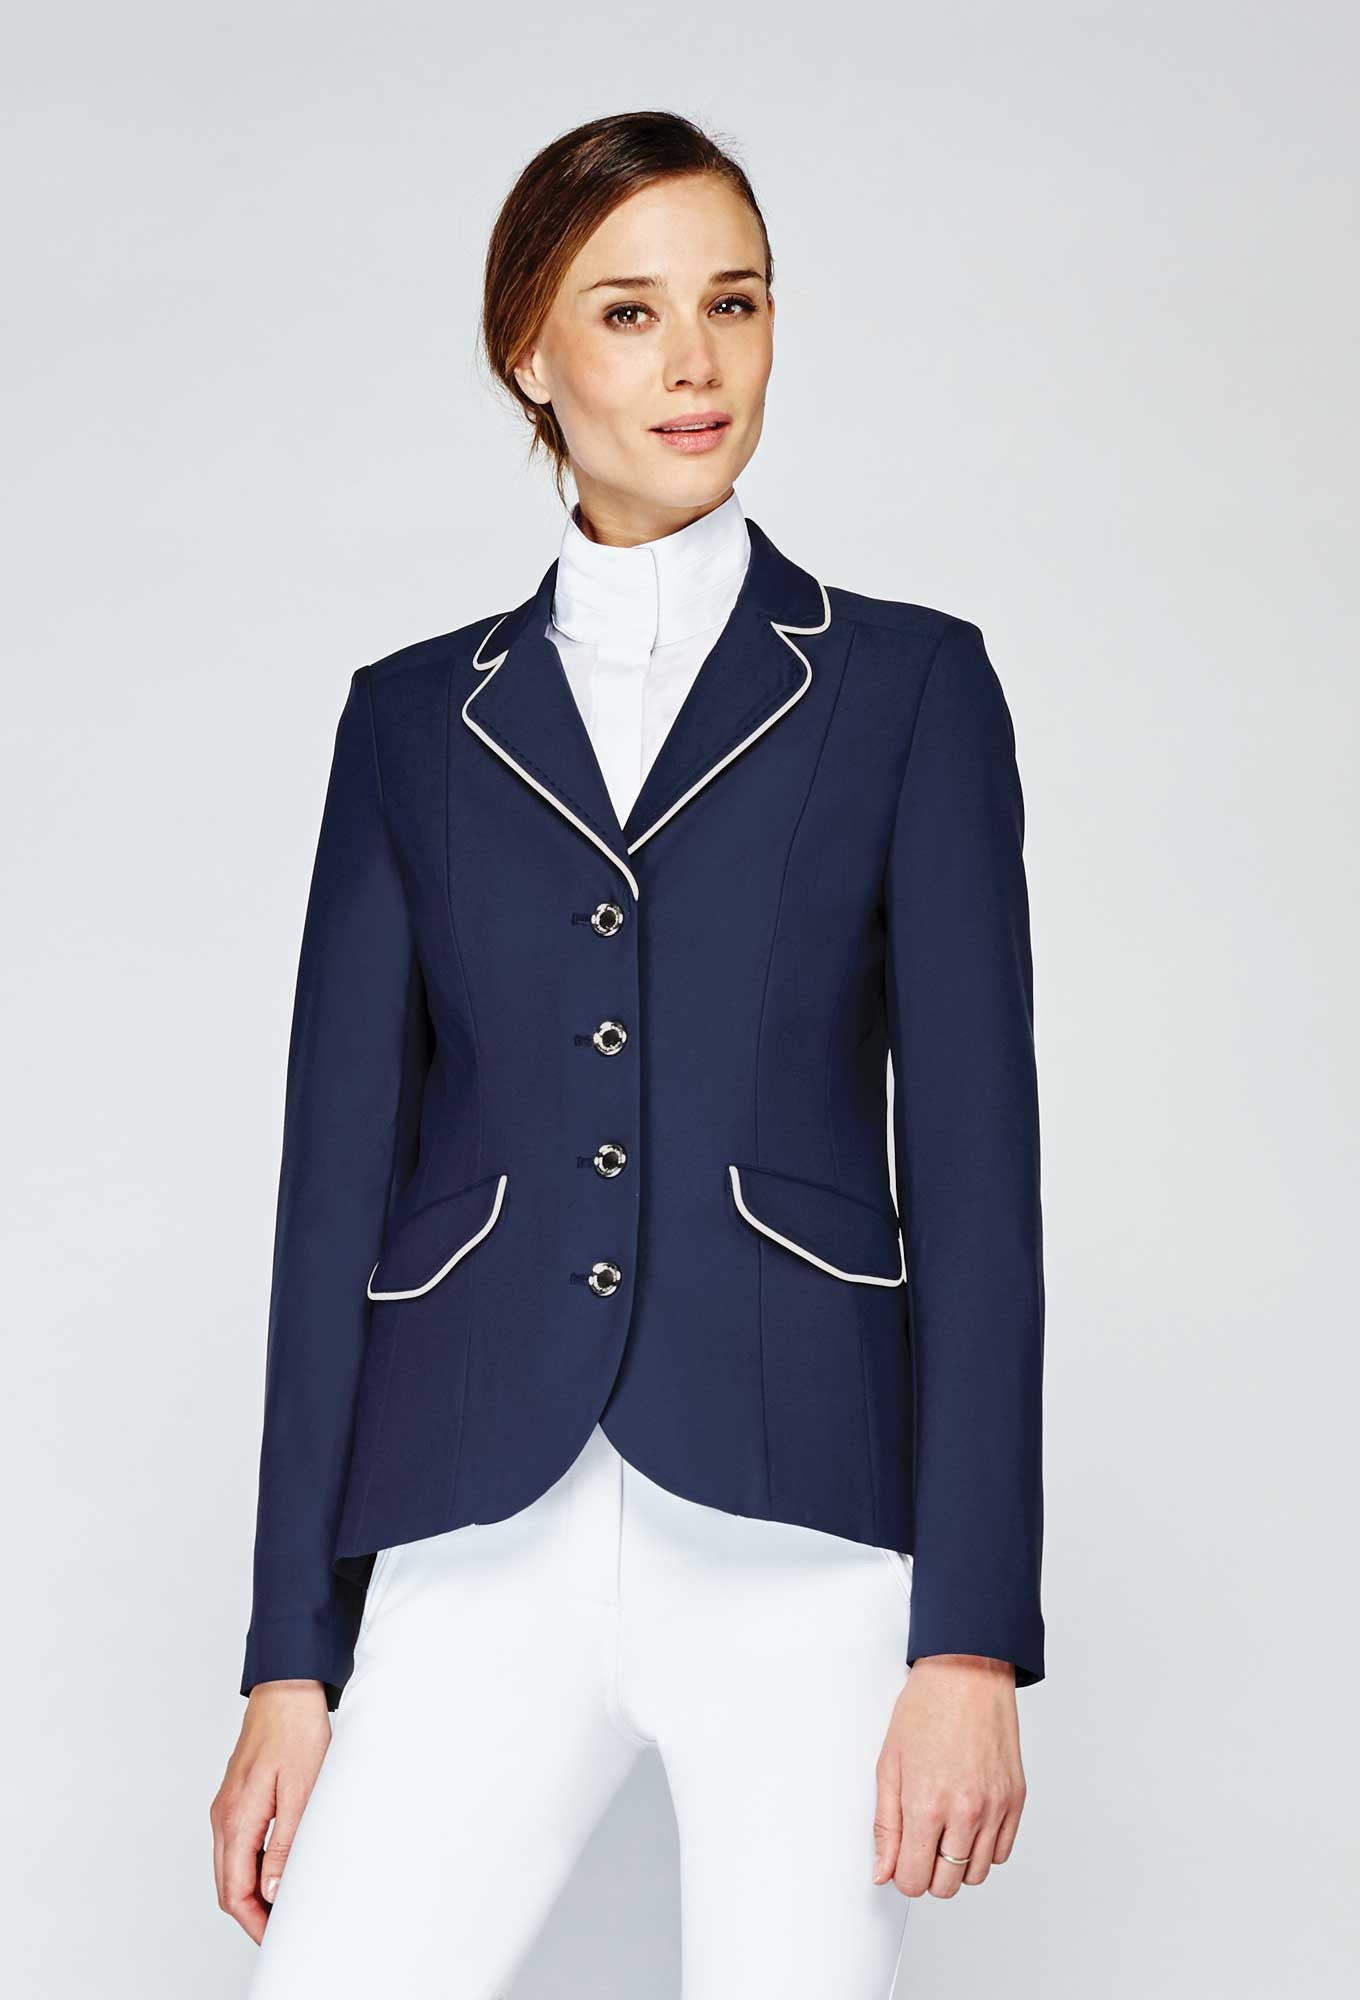 Noel Asmar London Show Jacket - Navy - Uptown E Store